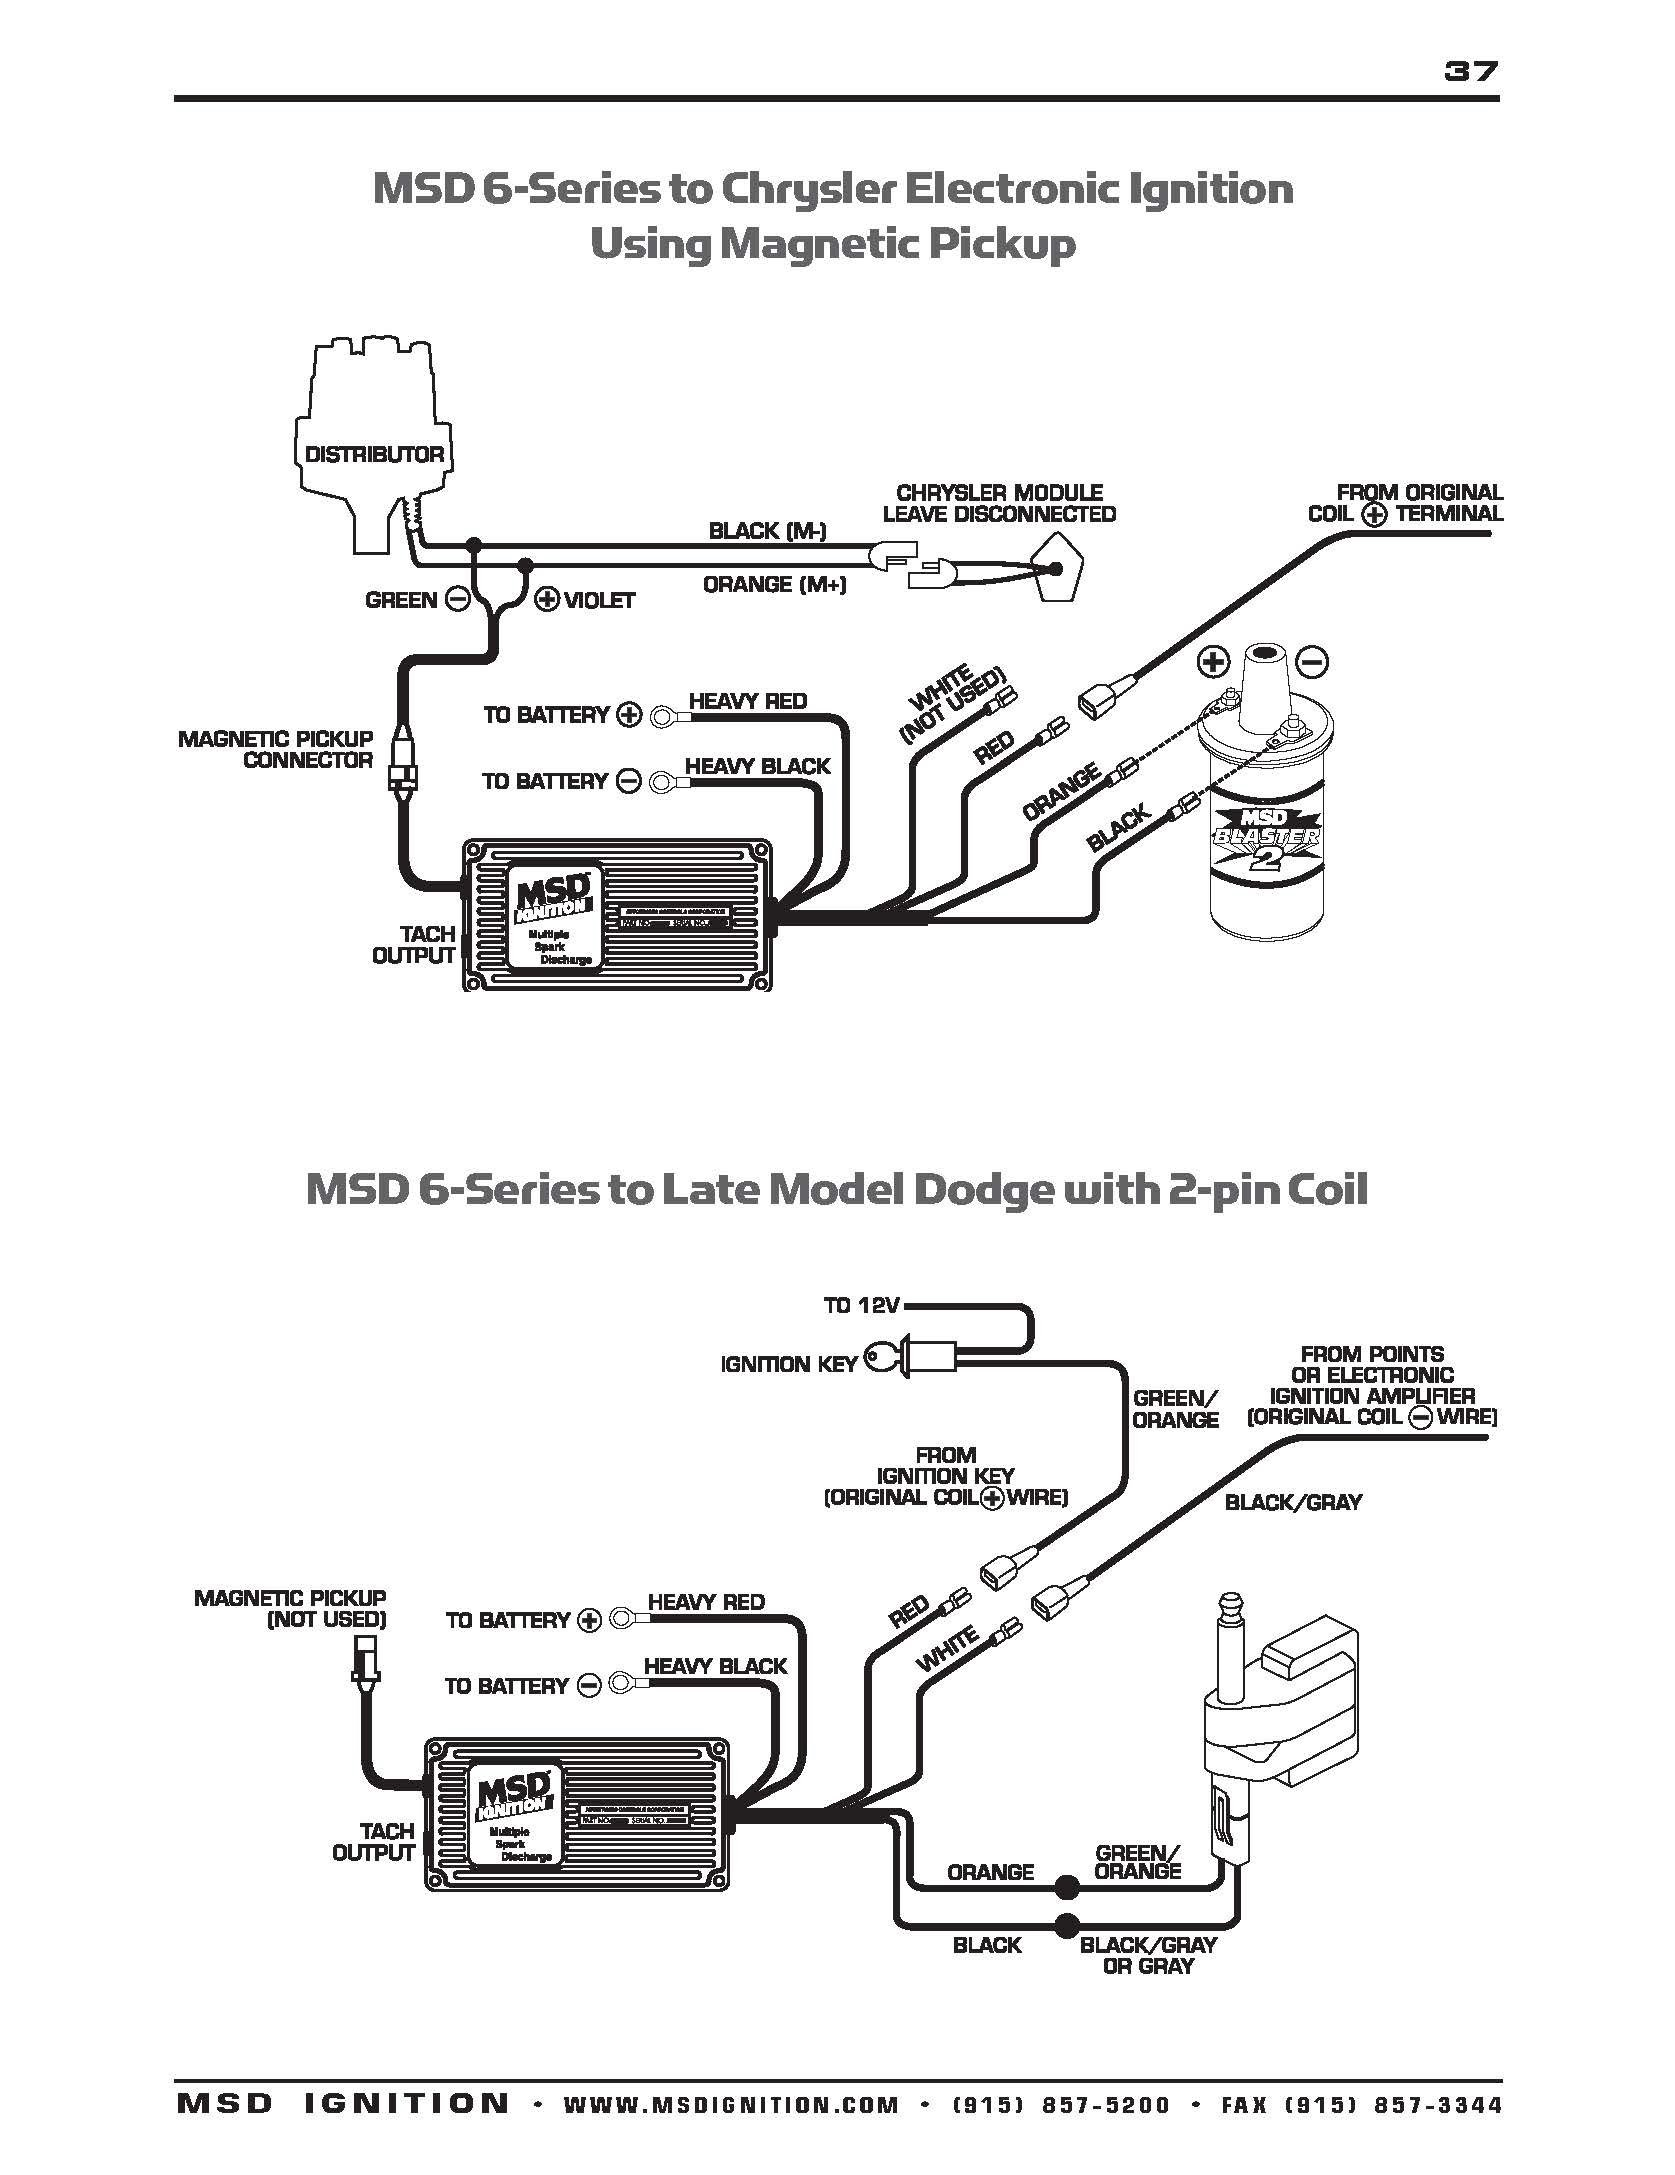 Duraspark 2 Wiring Diagram New 6401 Msd Ignition Wiring Diagram ford Wiring  Diagram Duraspark 2